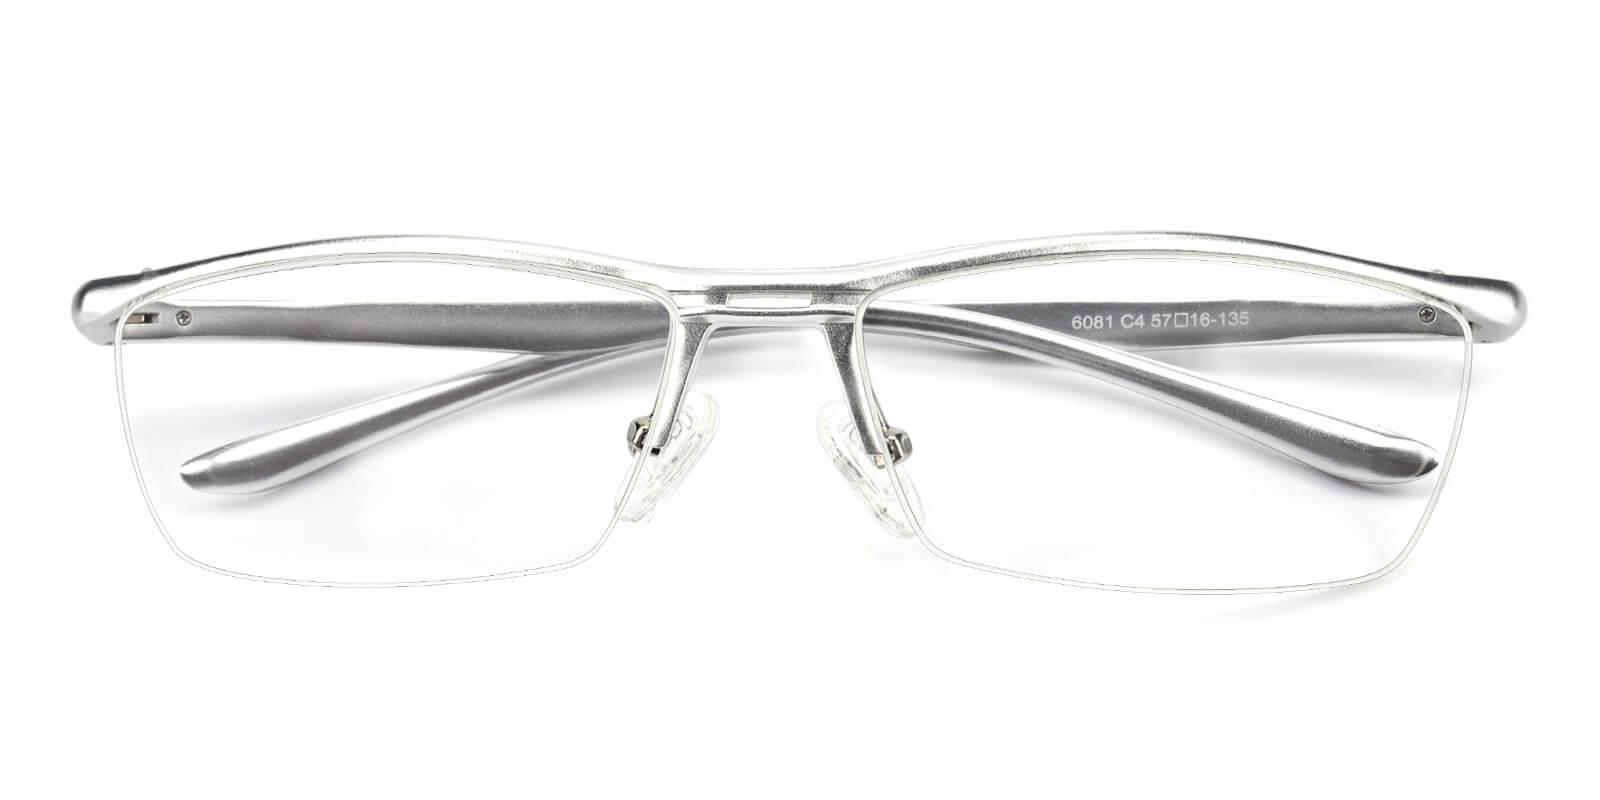 Vauseper-Silver-Rectangle-Metal-Eyeglasses-detail